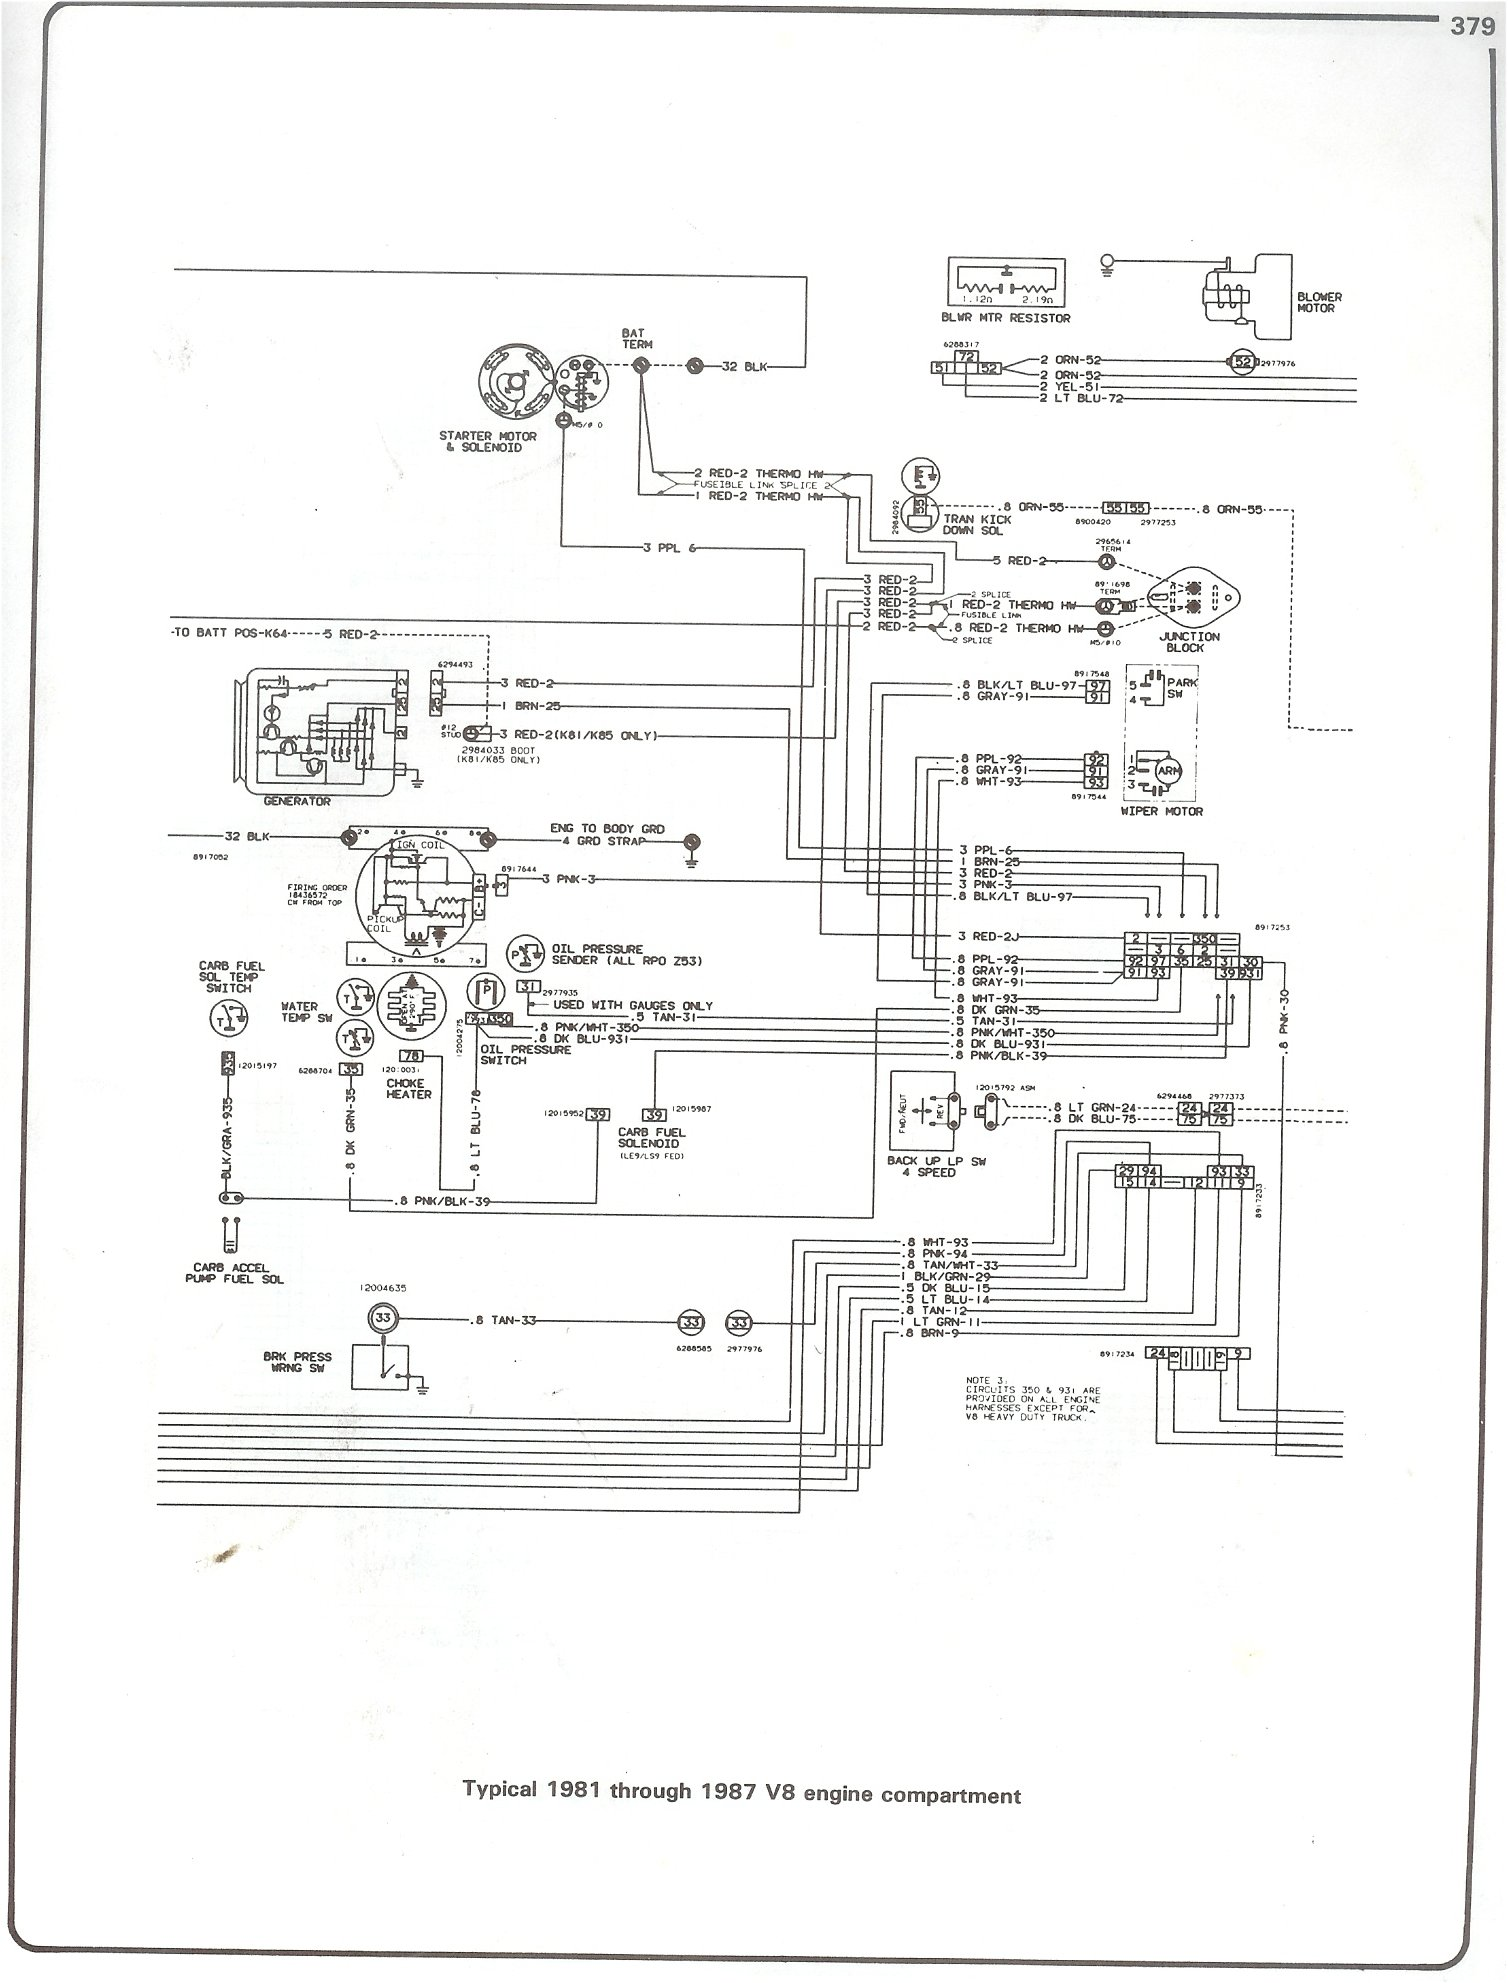 Plete 7387 Wiring Diagrams. 8187 V8 Engine Partment. Chevrolet. 1978 Chevy Scottsdale Wiring Diagram At Scoala.co